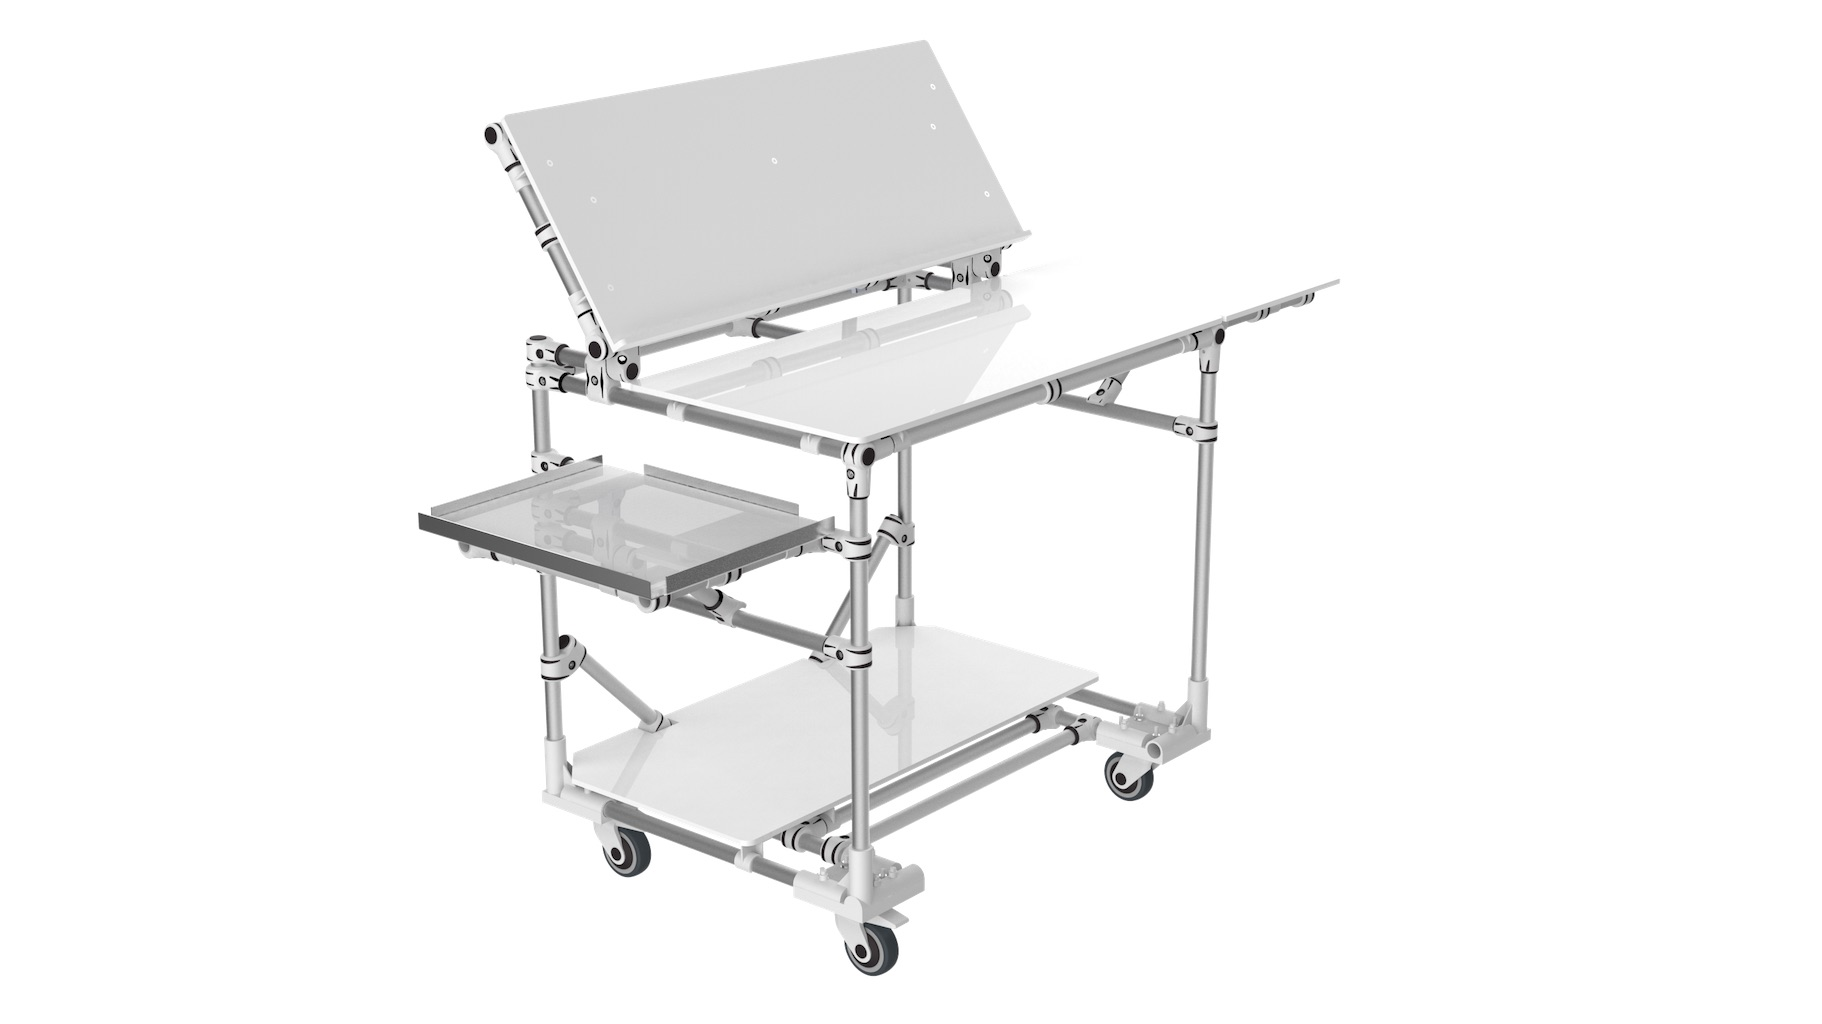 Industry - Mobile workstation equipped with tablets and an inclined panel ideal for arranging documents. Station on wheels, perfect for moving around the entire production line.